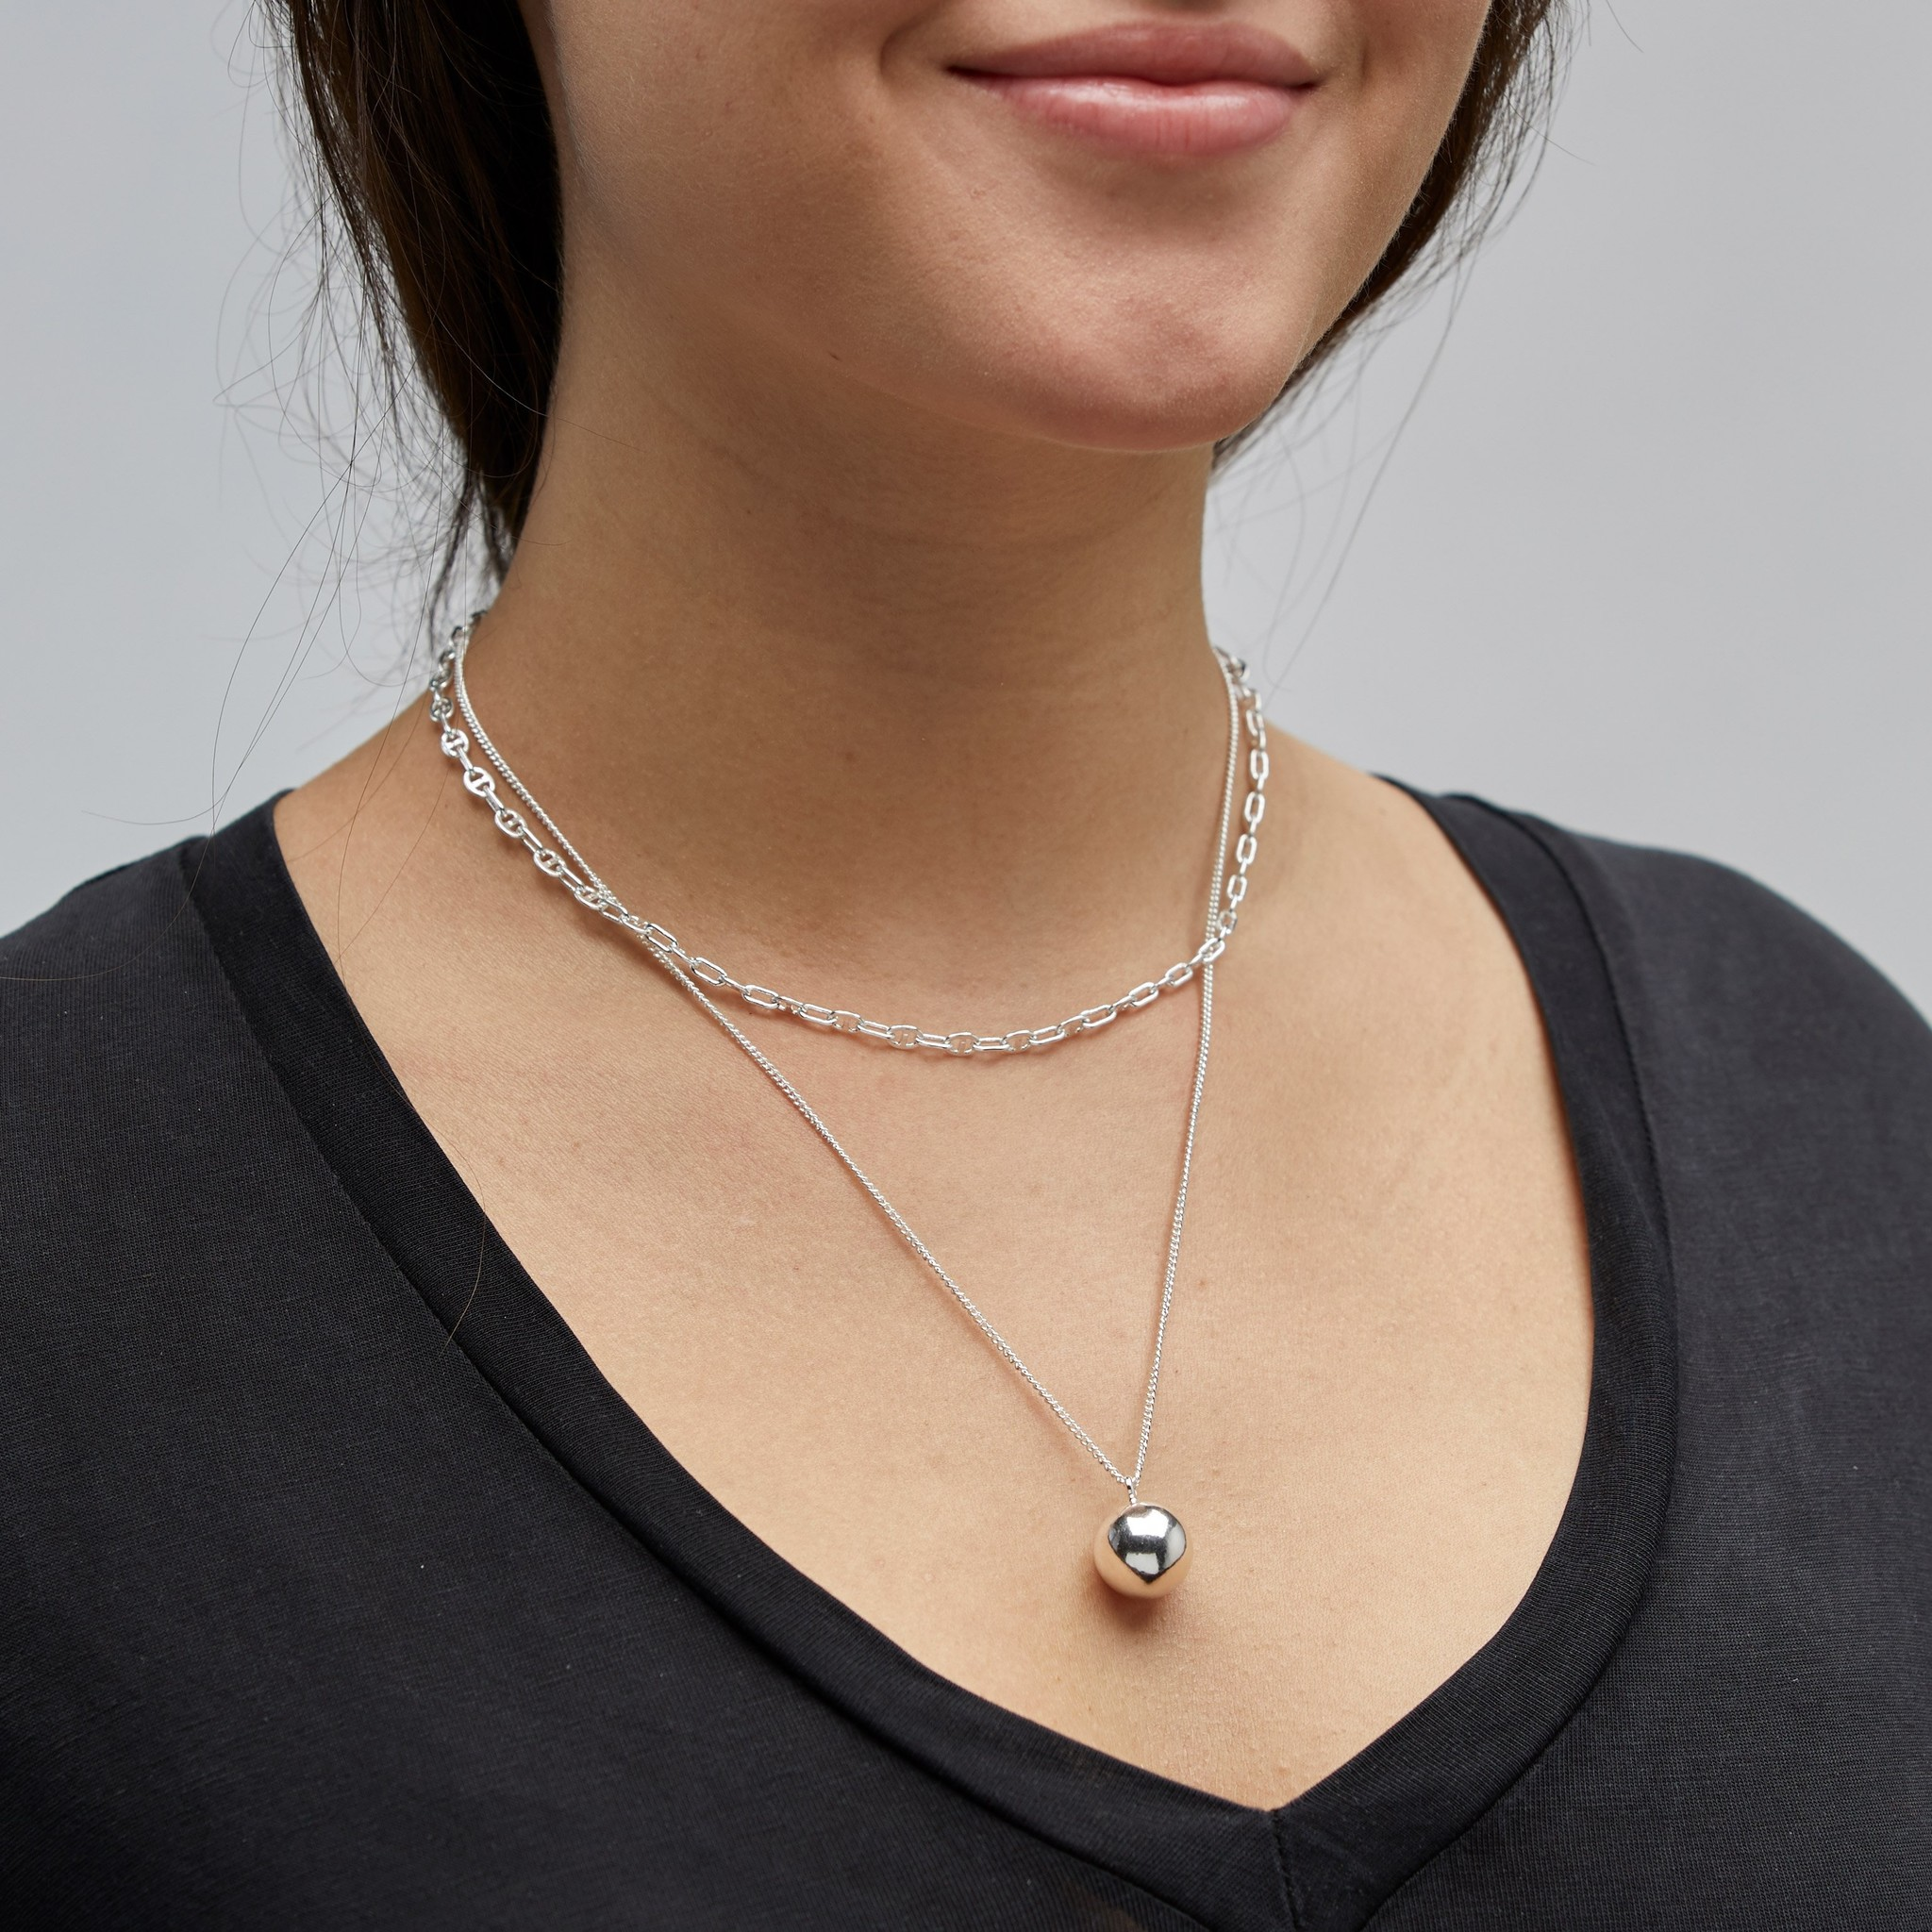 Pilgrim Pilgrim Silver 2-in-1 Necklace Set : Earth